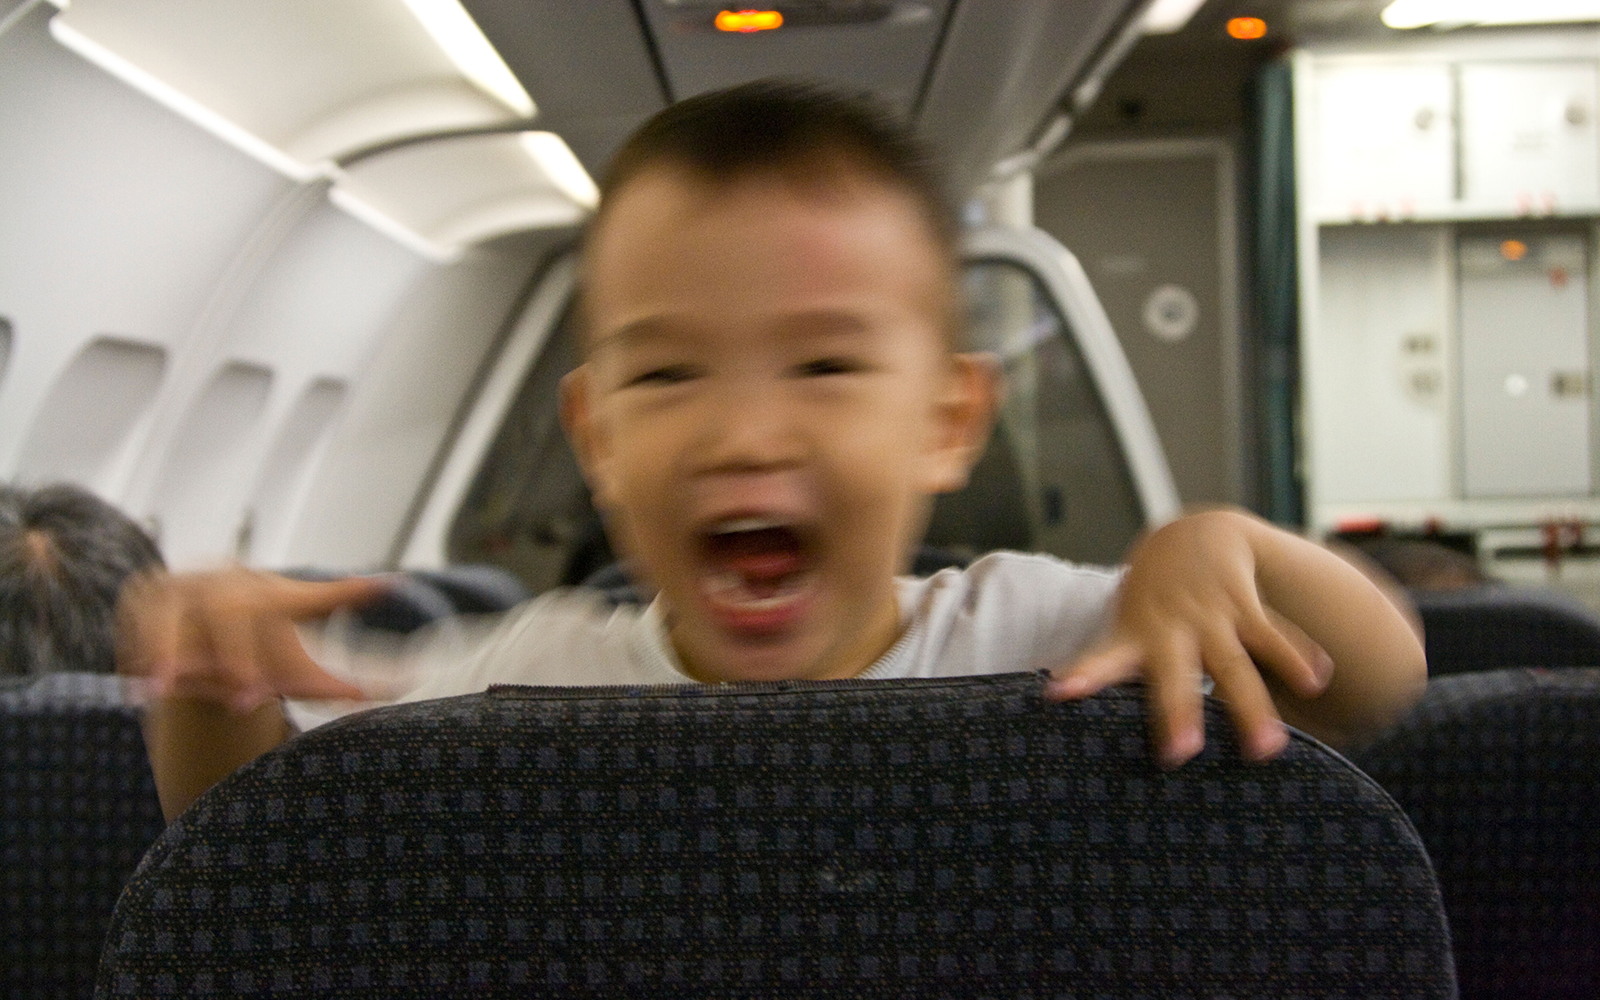 Annoying kid on airplane